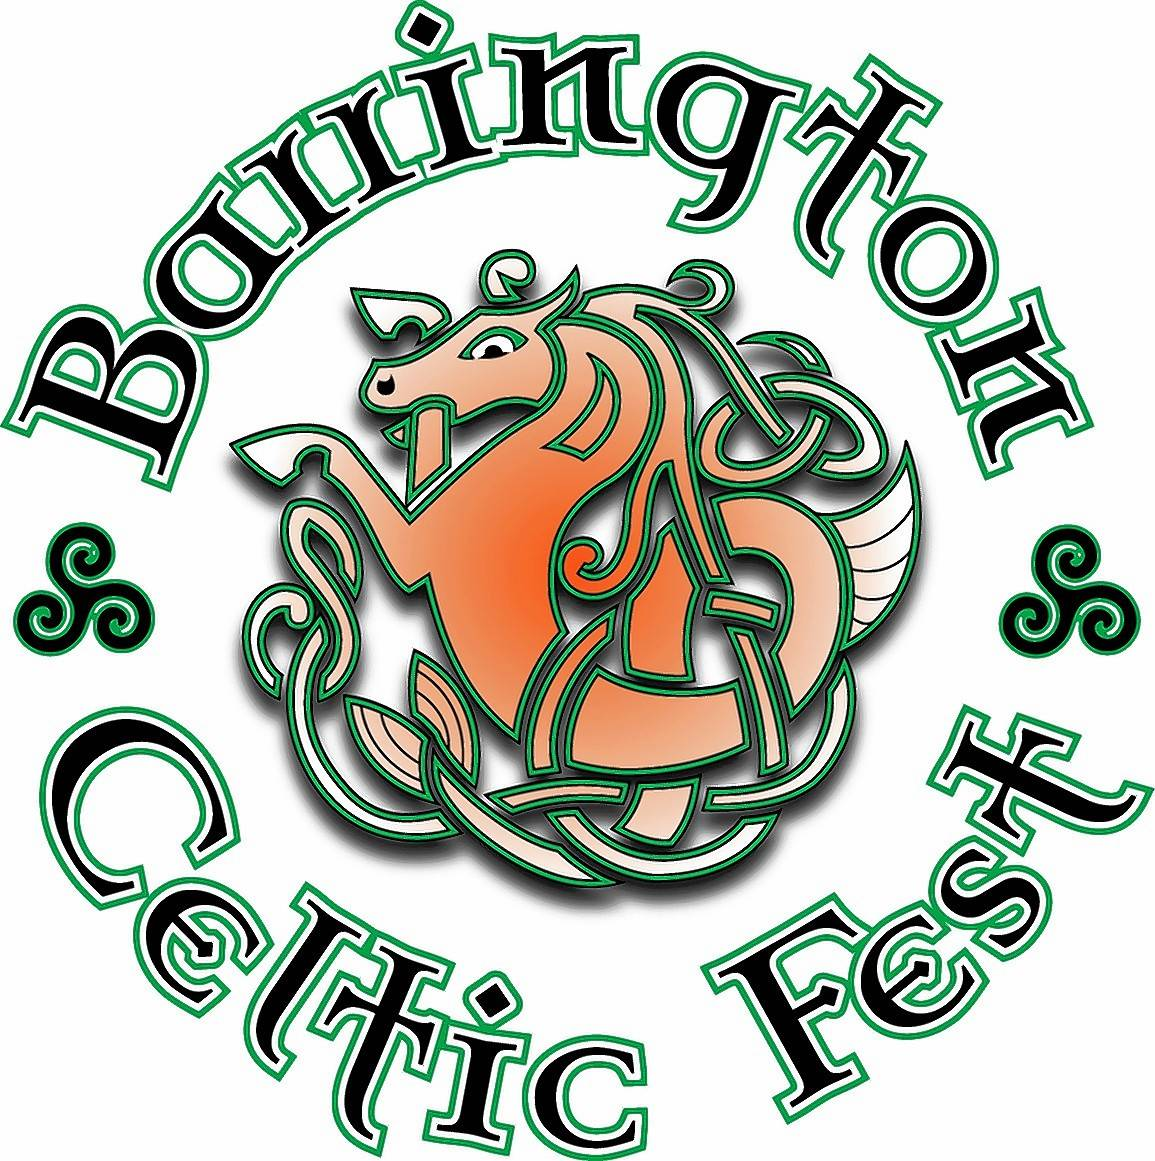 Barrington Celtic Fest logo